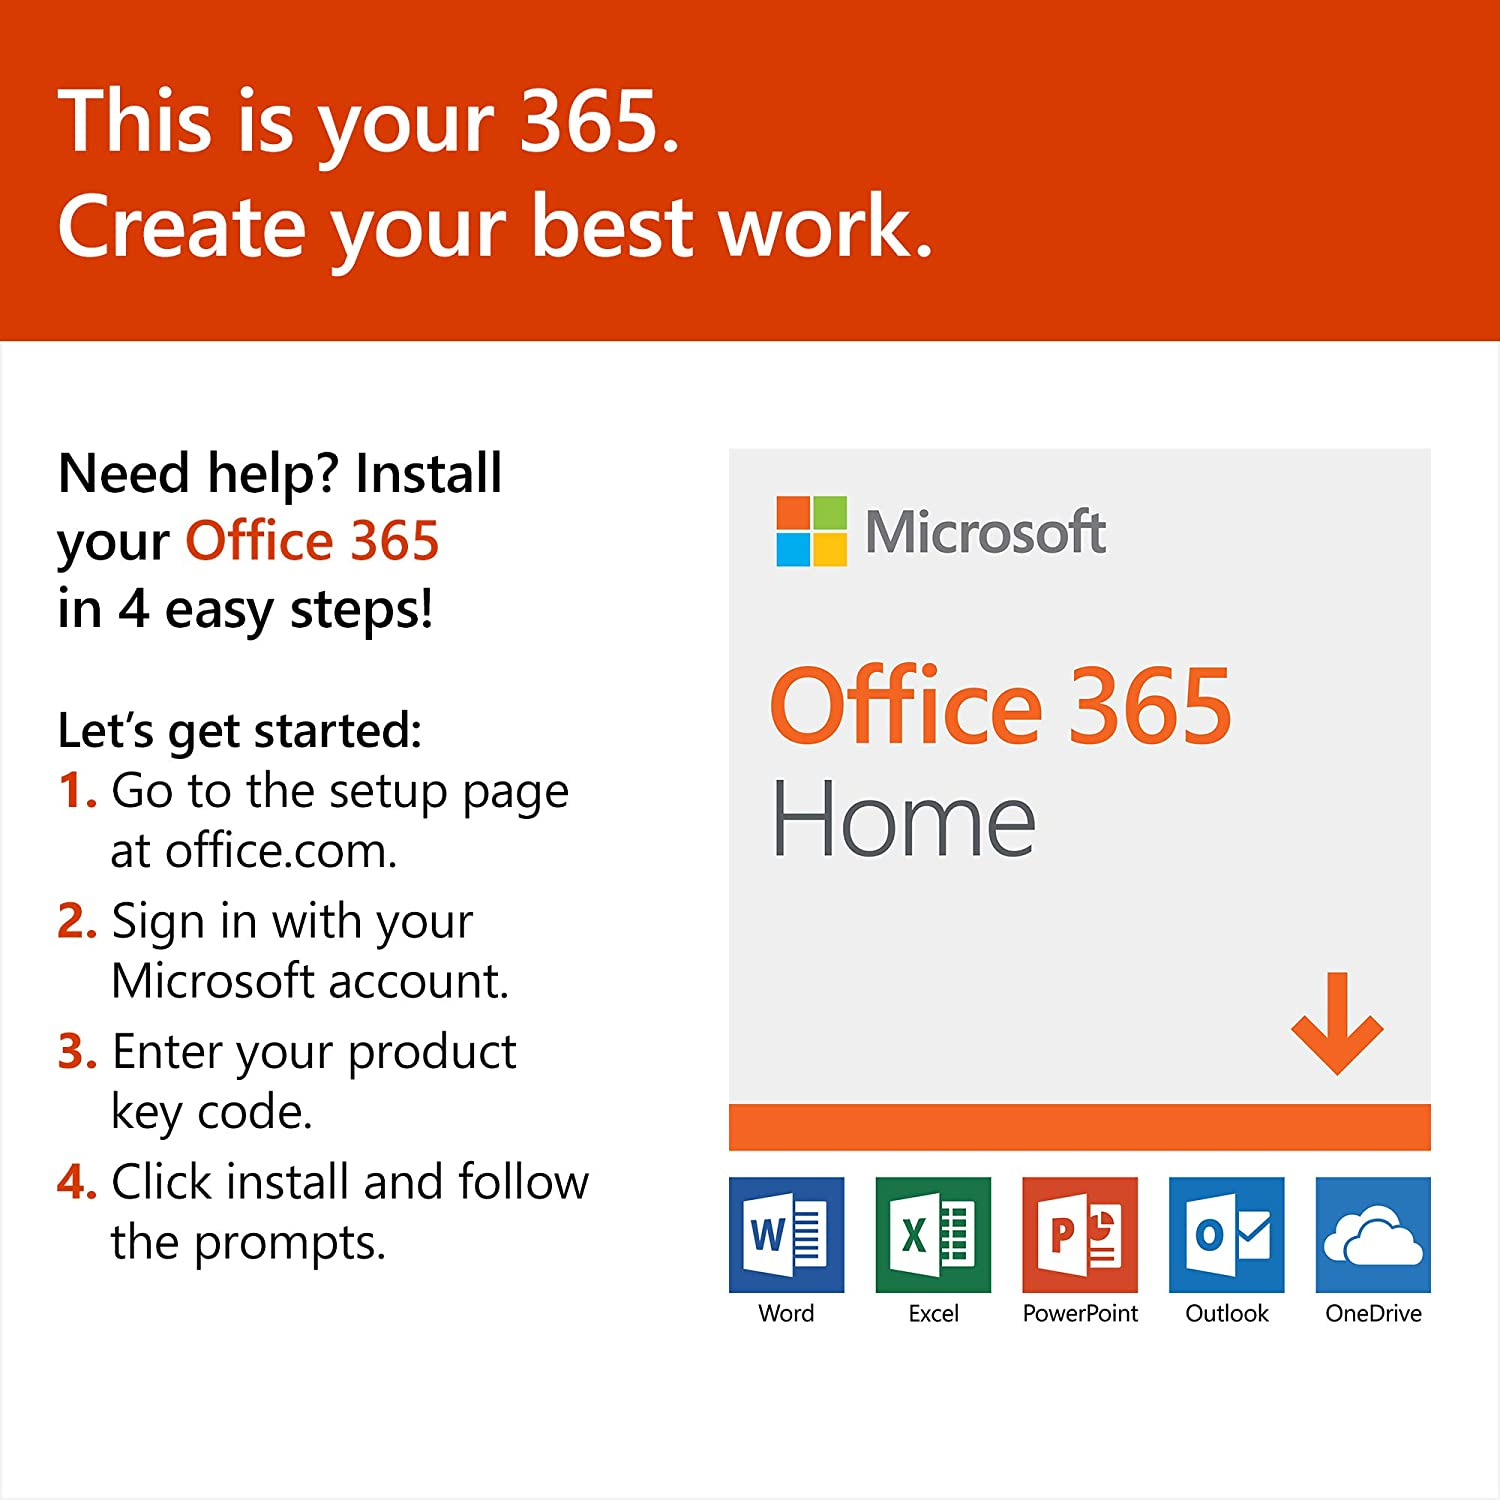 ms office 365 home product key free